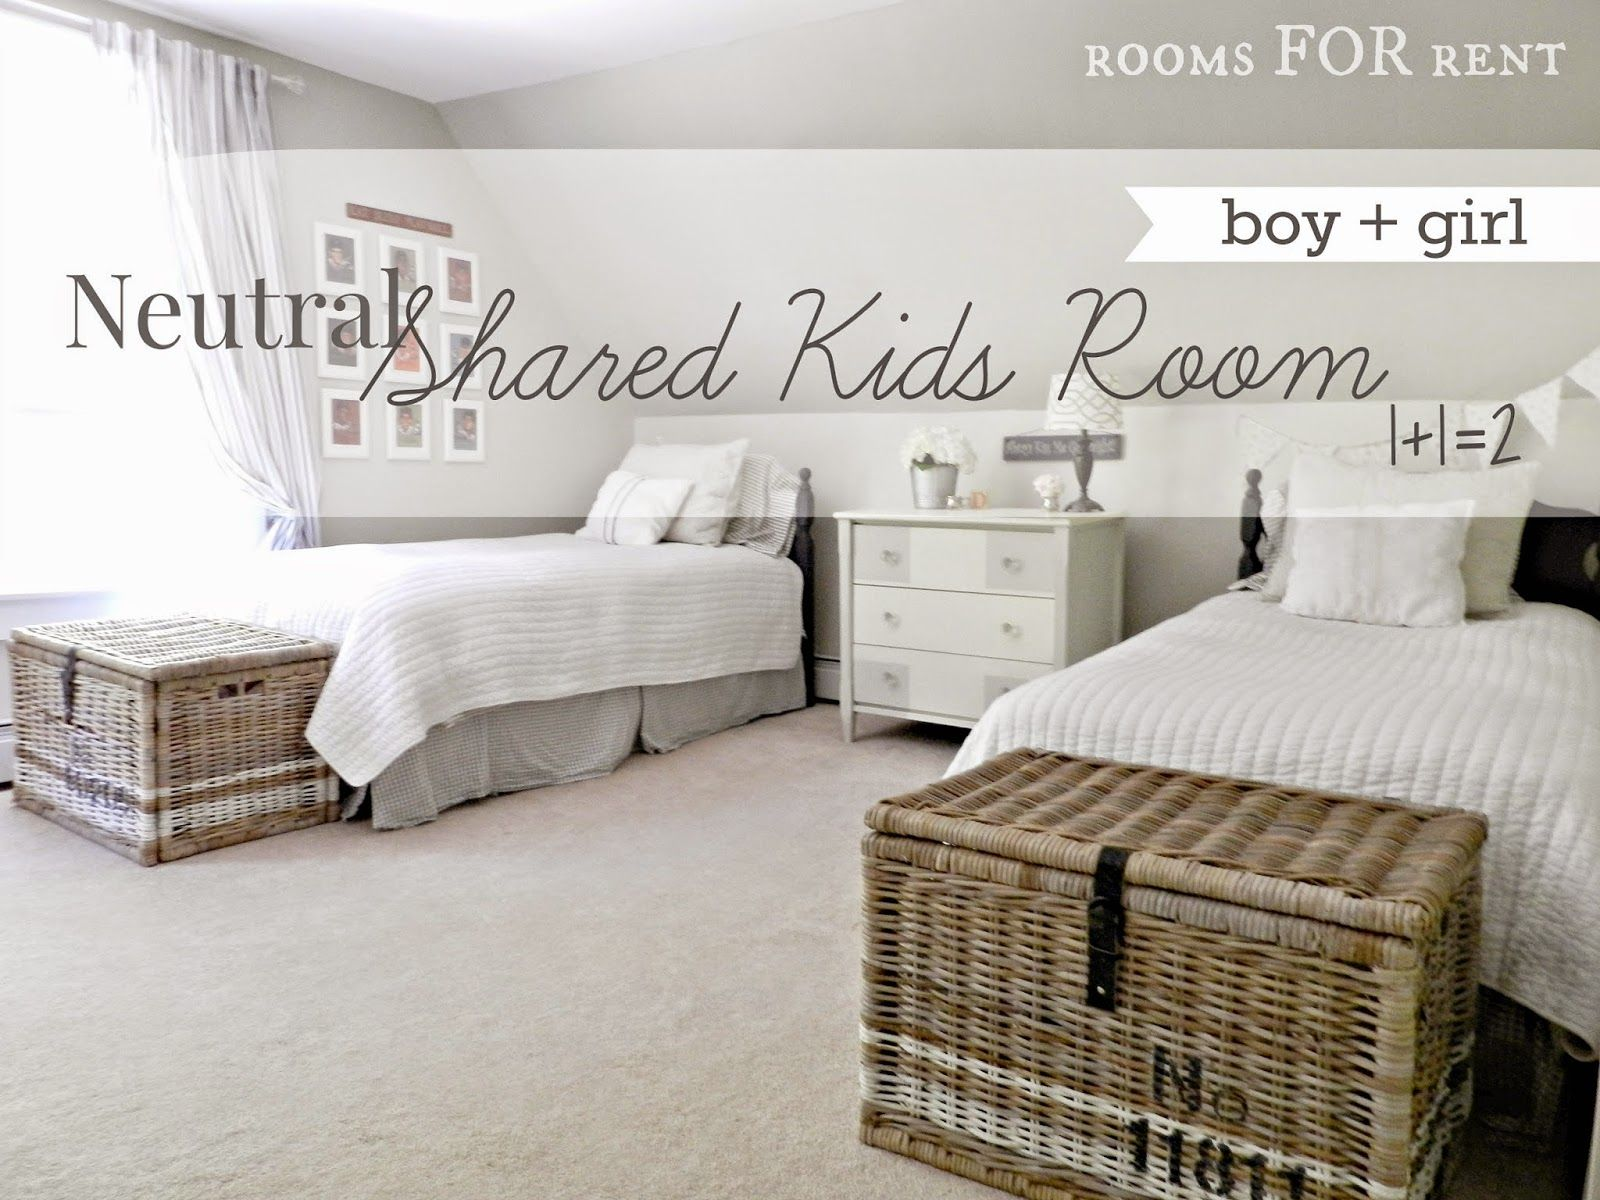 e see how Bre created a neutral shared kids room for her son and